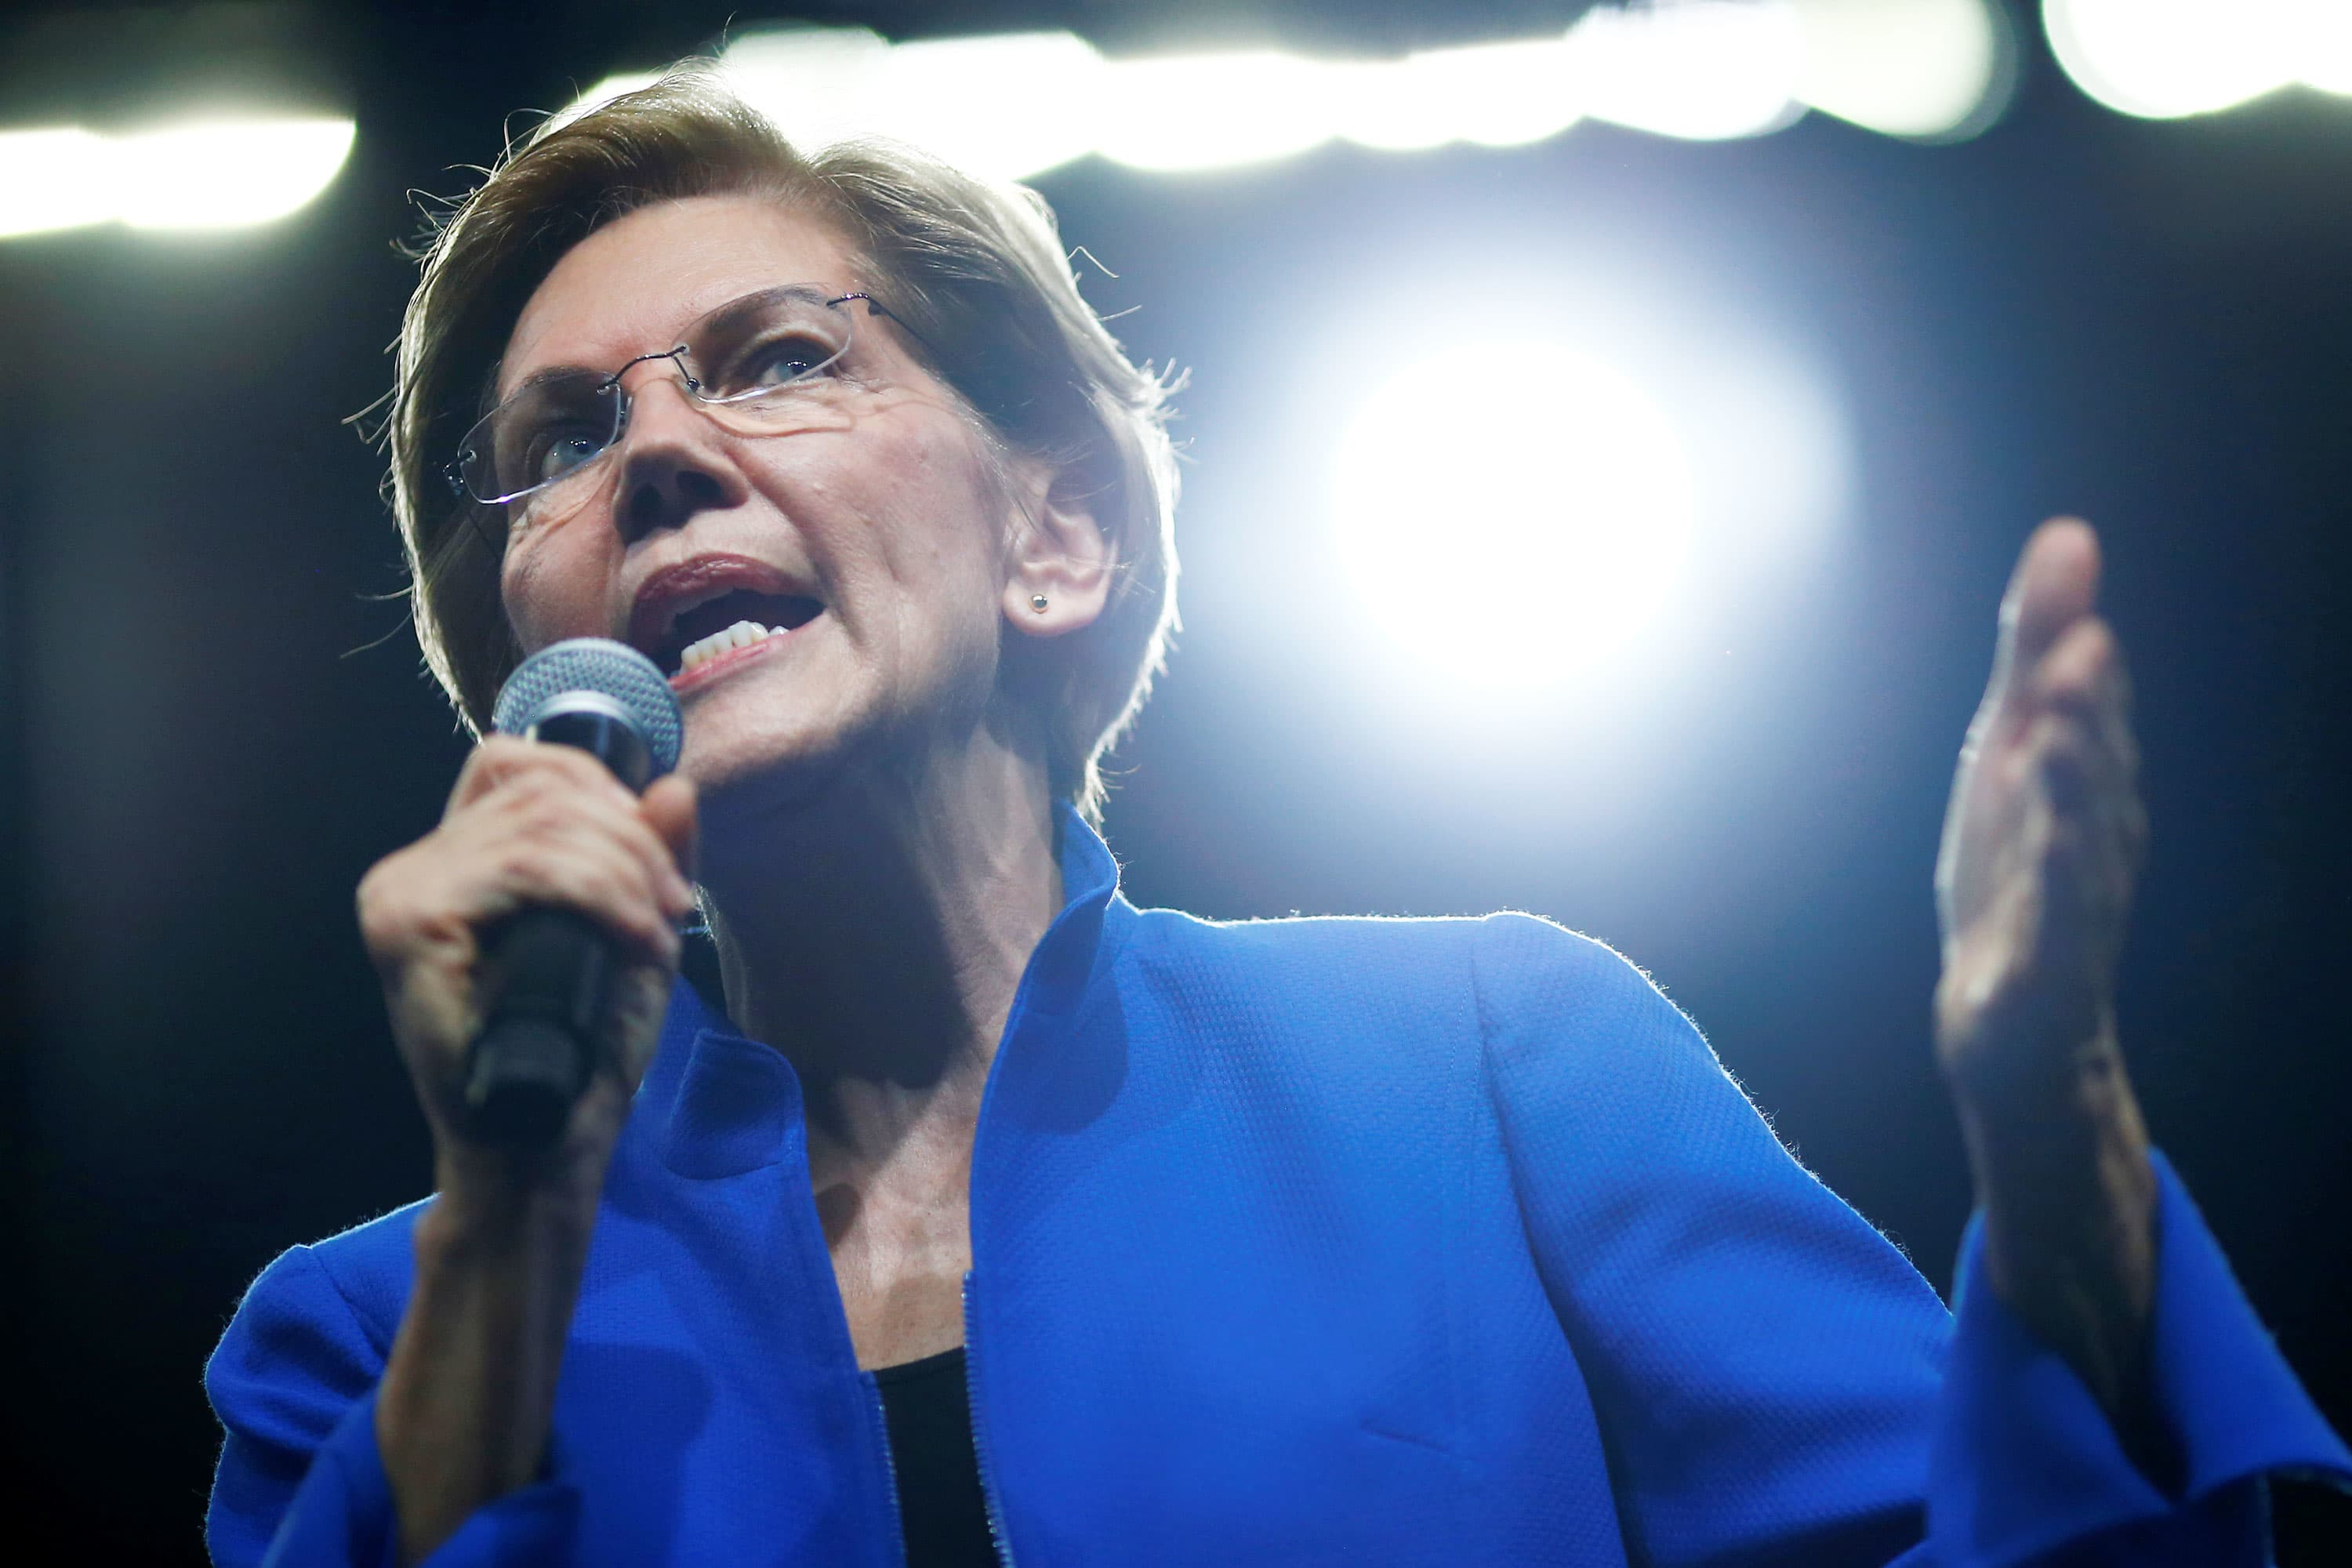 Elizabeth Warren buys CNBC commercial time to blast billionaires in a fiery new campaign ad